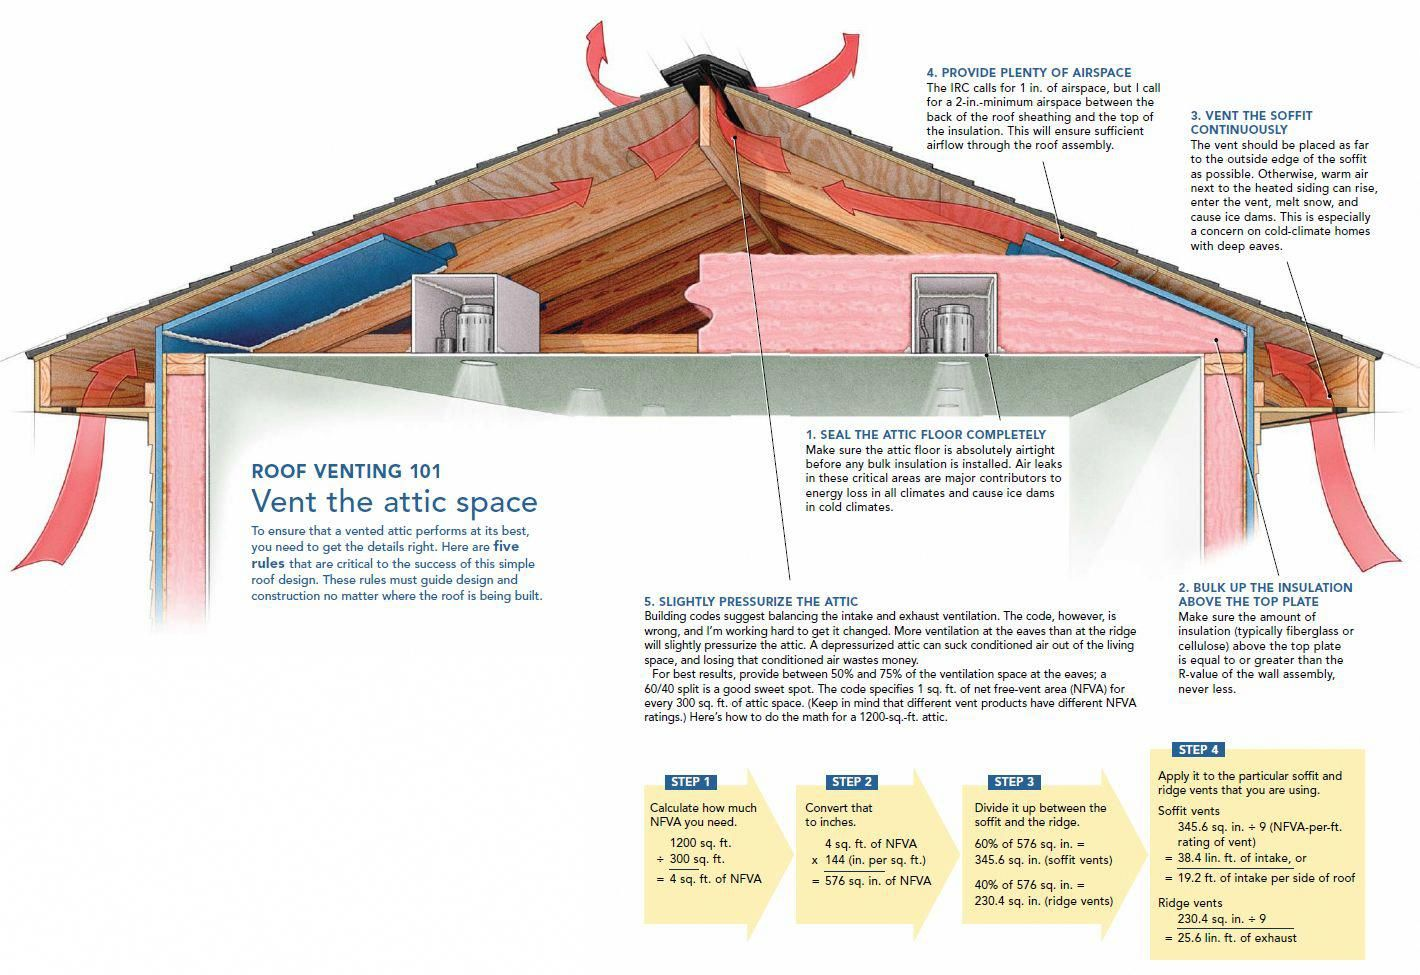 Vented Soffit S Is An Easy Way To Allow Cooler Air Into Your Attic To Replace The Hot Air Exiting Through The Roof V Attic Ventilation Roofing Attic Renovation